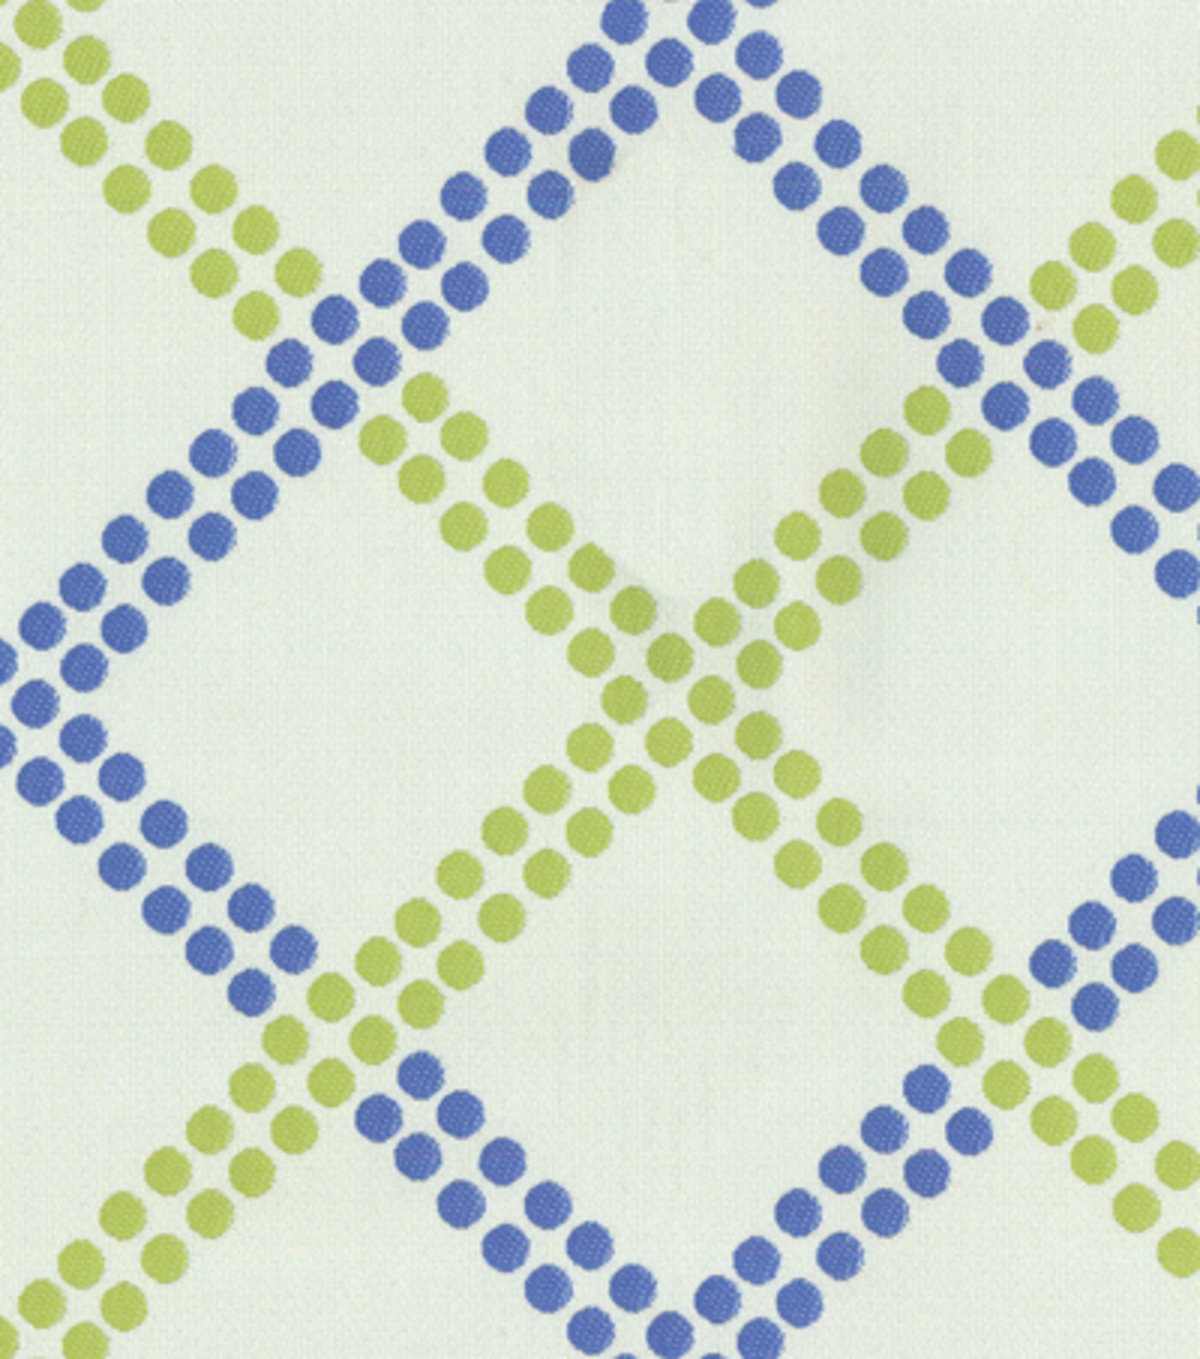 Home Decor 8\u0022x8\u0022 Fabric Swatch-Upholstery Fabric-Waverly Crossways/Blueberry